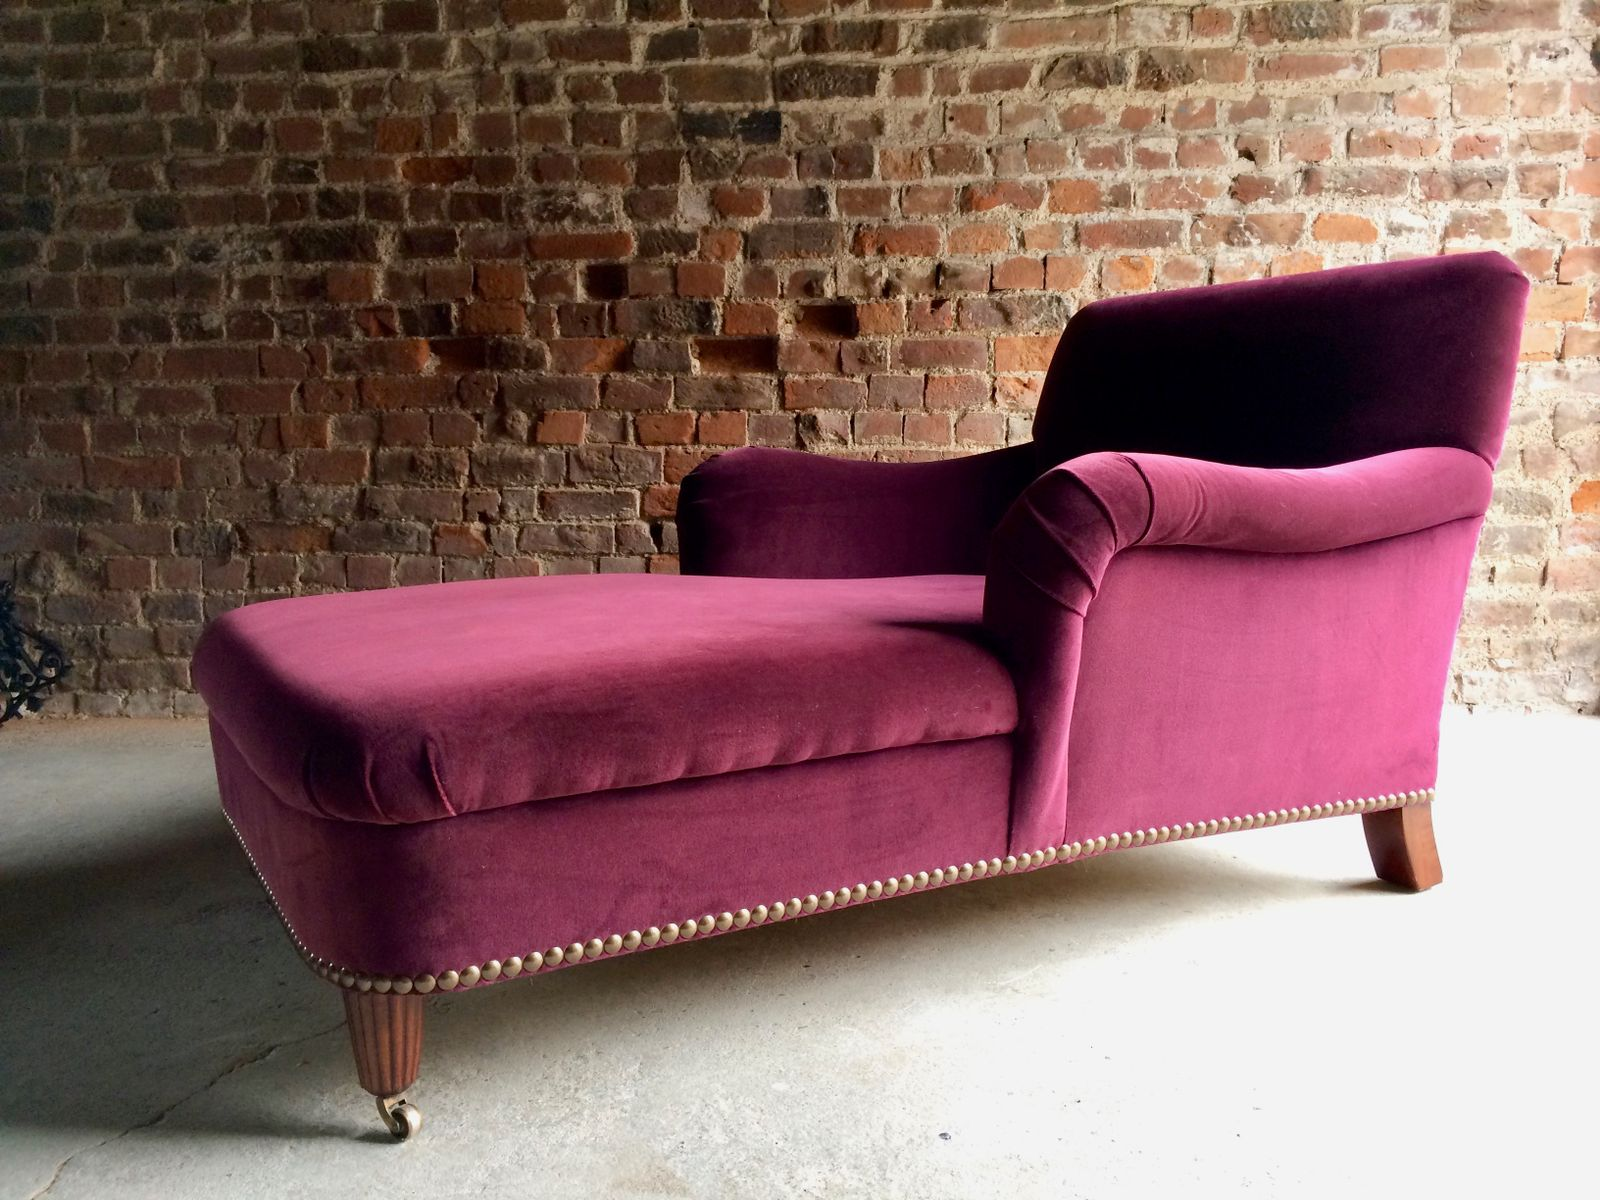 Bohemian chaise longue sofa by ralph lauren 2000s for for Chaise longue furniture